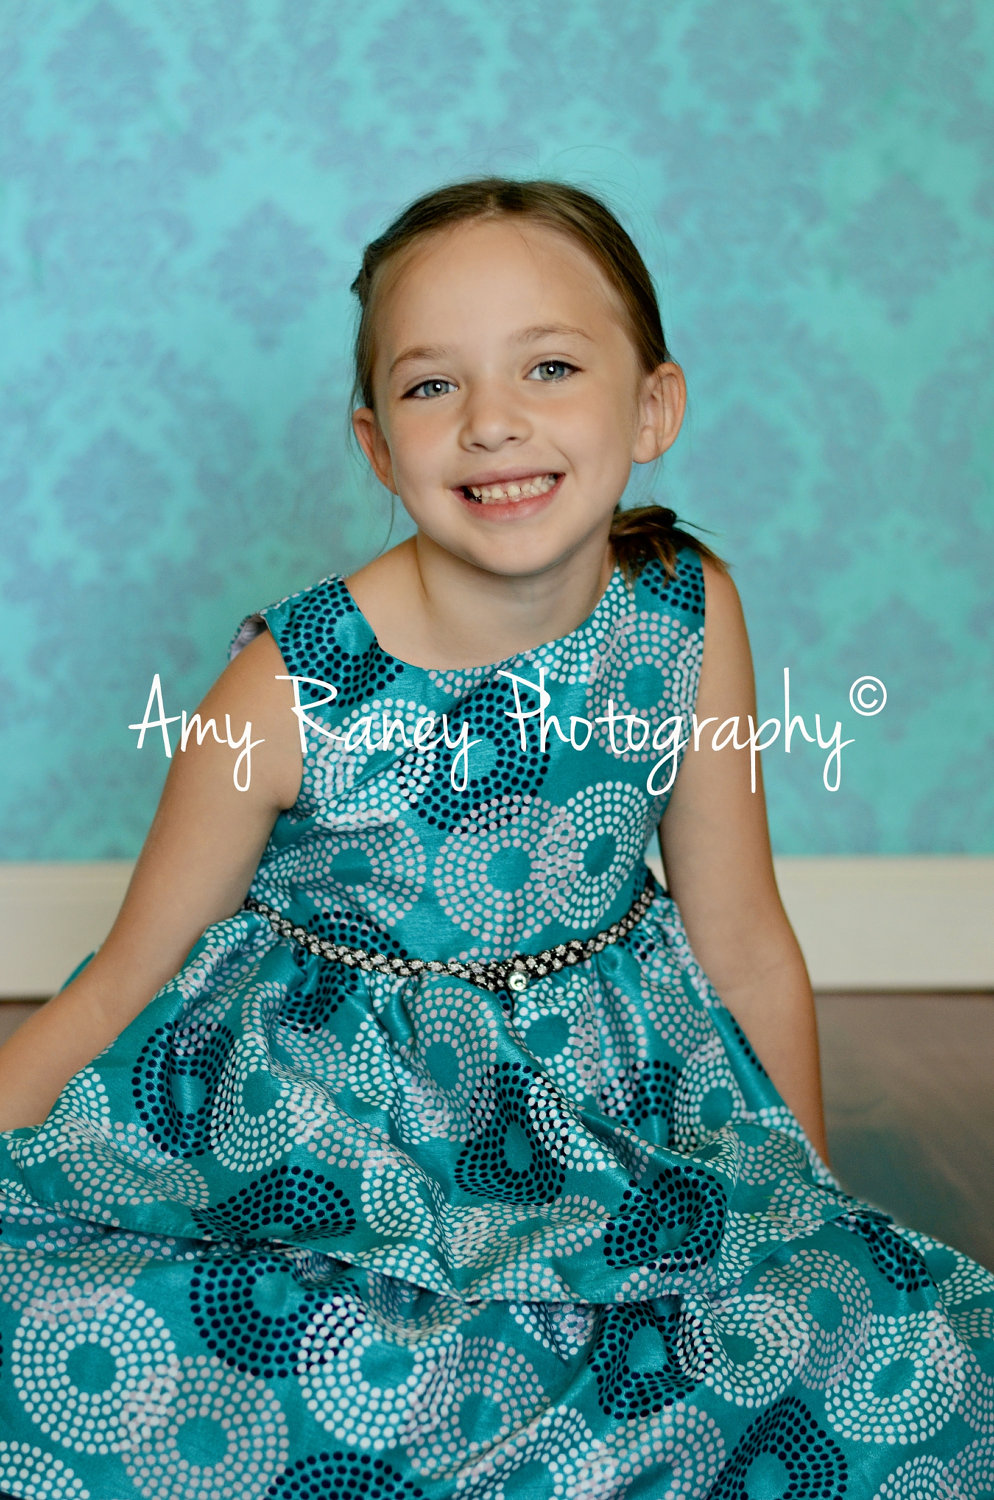 Teal and Silver Damask – Machine Wash and Dry